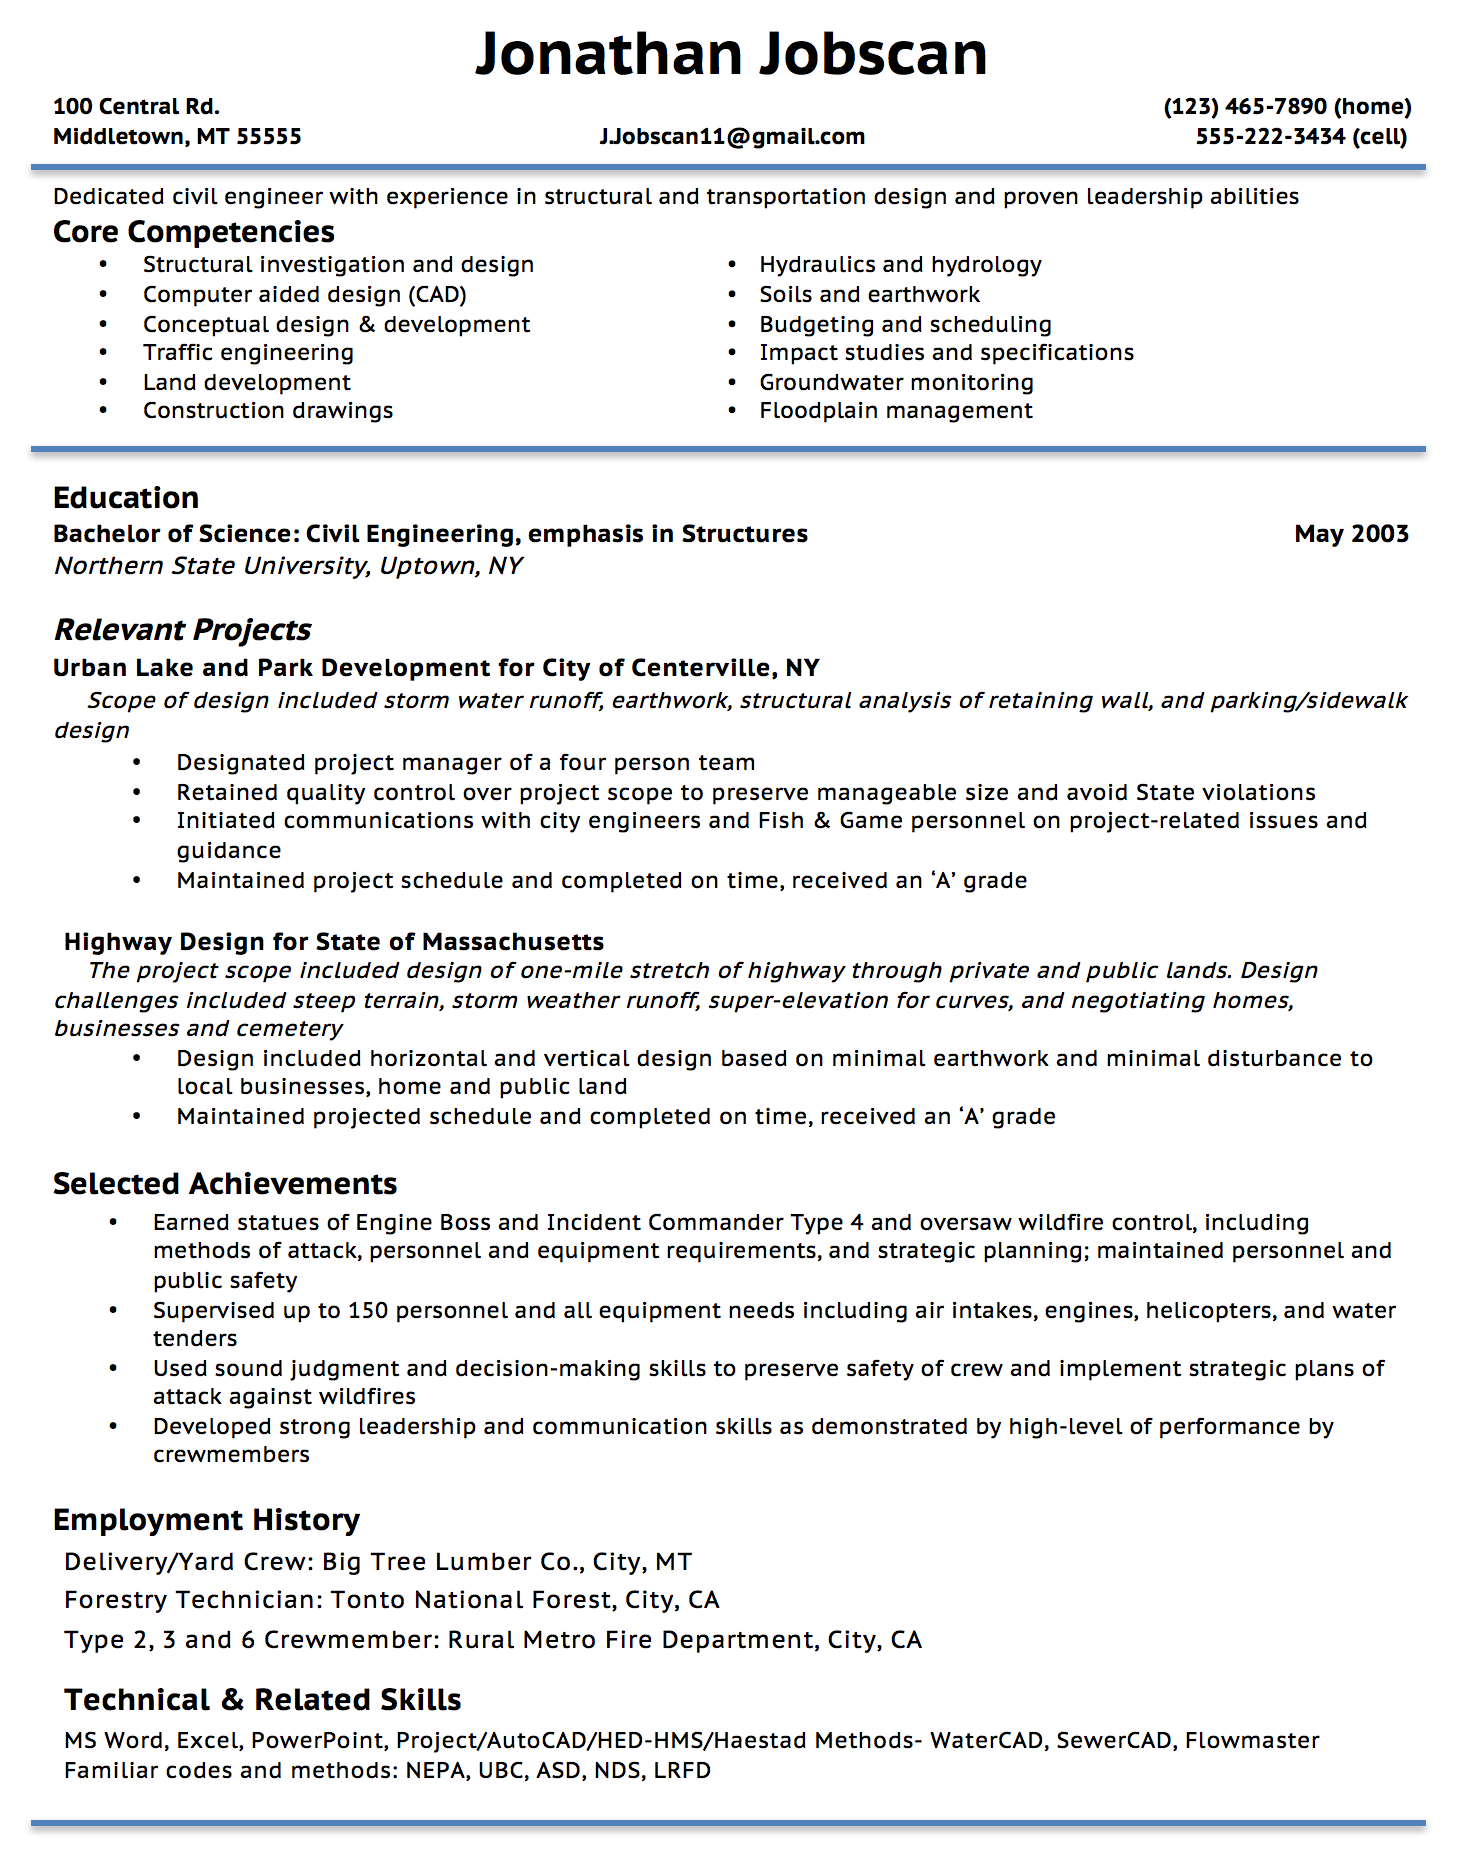 Opposenewapstandardsus  Terrific Resume Writing Guide  Jobscan With Fair Example Of A Functional Resume Format With Astounding Types Of Skills For Resume Also Case Management Resume In Addition Talent Resume And Profesional Resume As Well As Staple Resume Additionally Resume On Microsoft Word From Jobscanco With Opposenewapstandardsus  Fair Resume Writing Guide  Jobscan With Astounding Example Of A Functional Resume Format And Terrific Types Of Skills For Resume Also Case Management Resume In Addition Talent Resume From Jobscanco